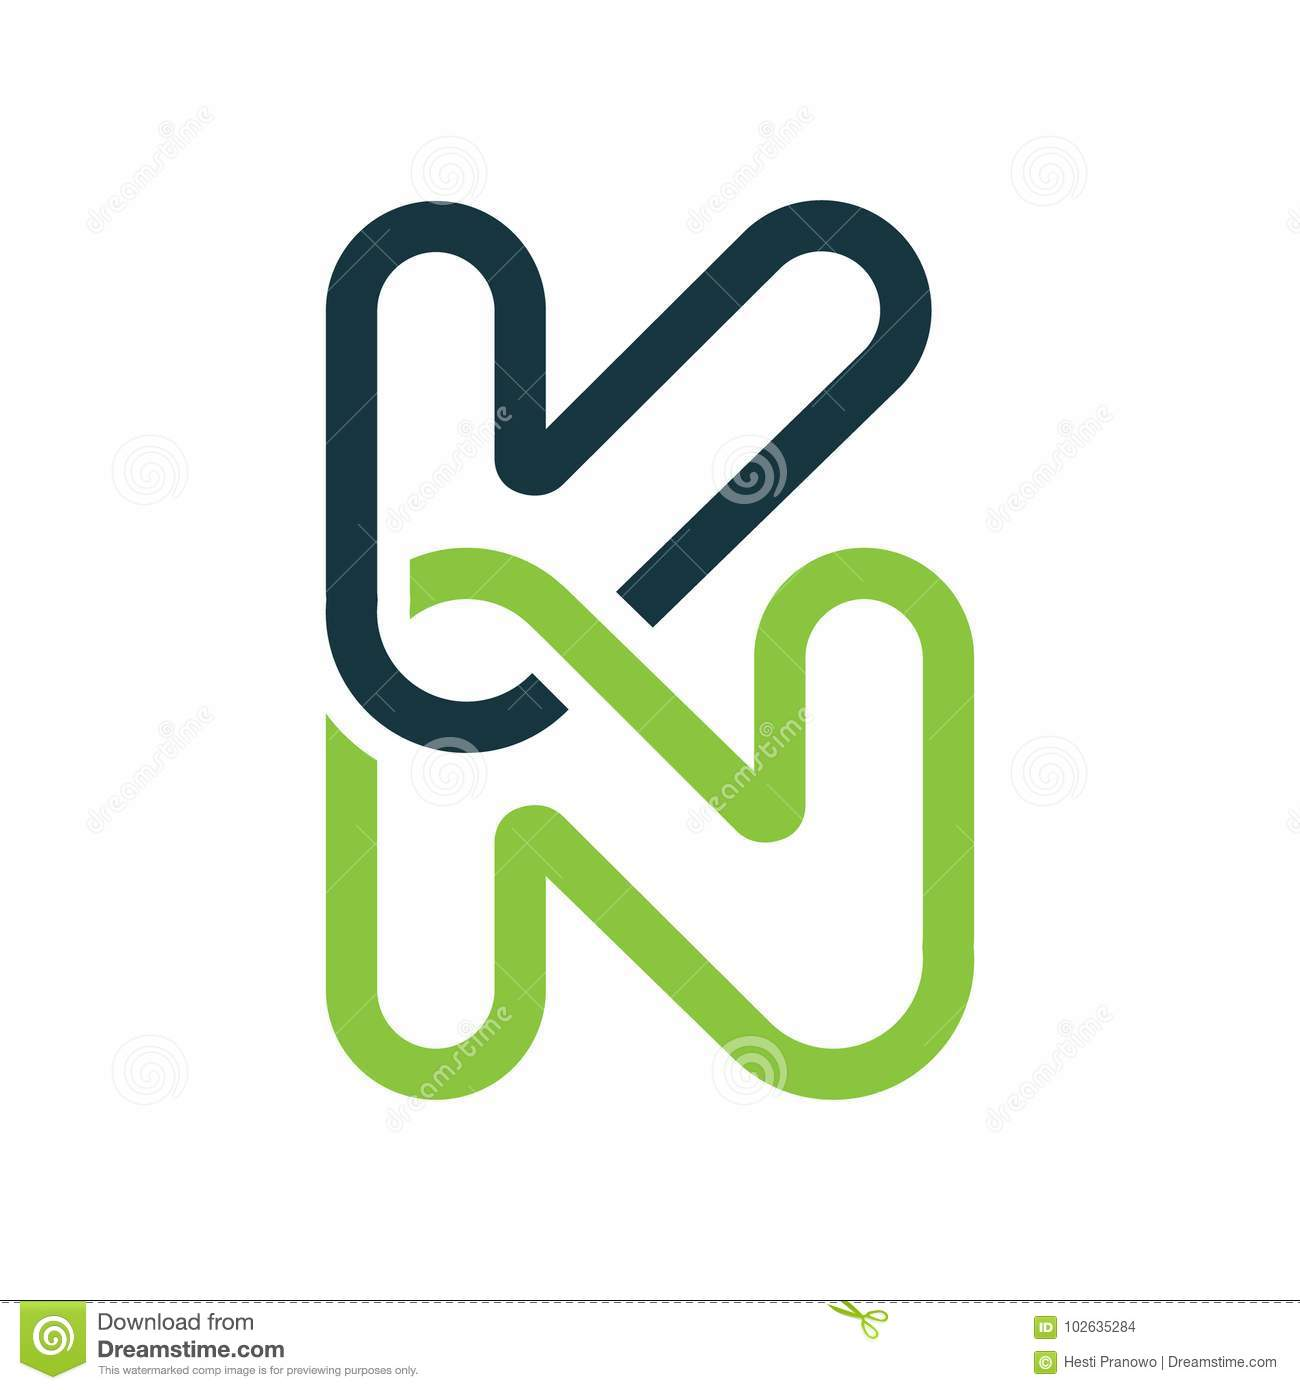 Creative letter kn logo abstract business logo design template creative letter kn logo abstract business logo design template accmission Image collections